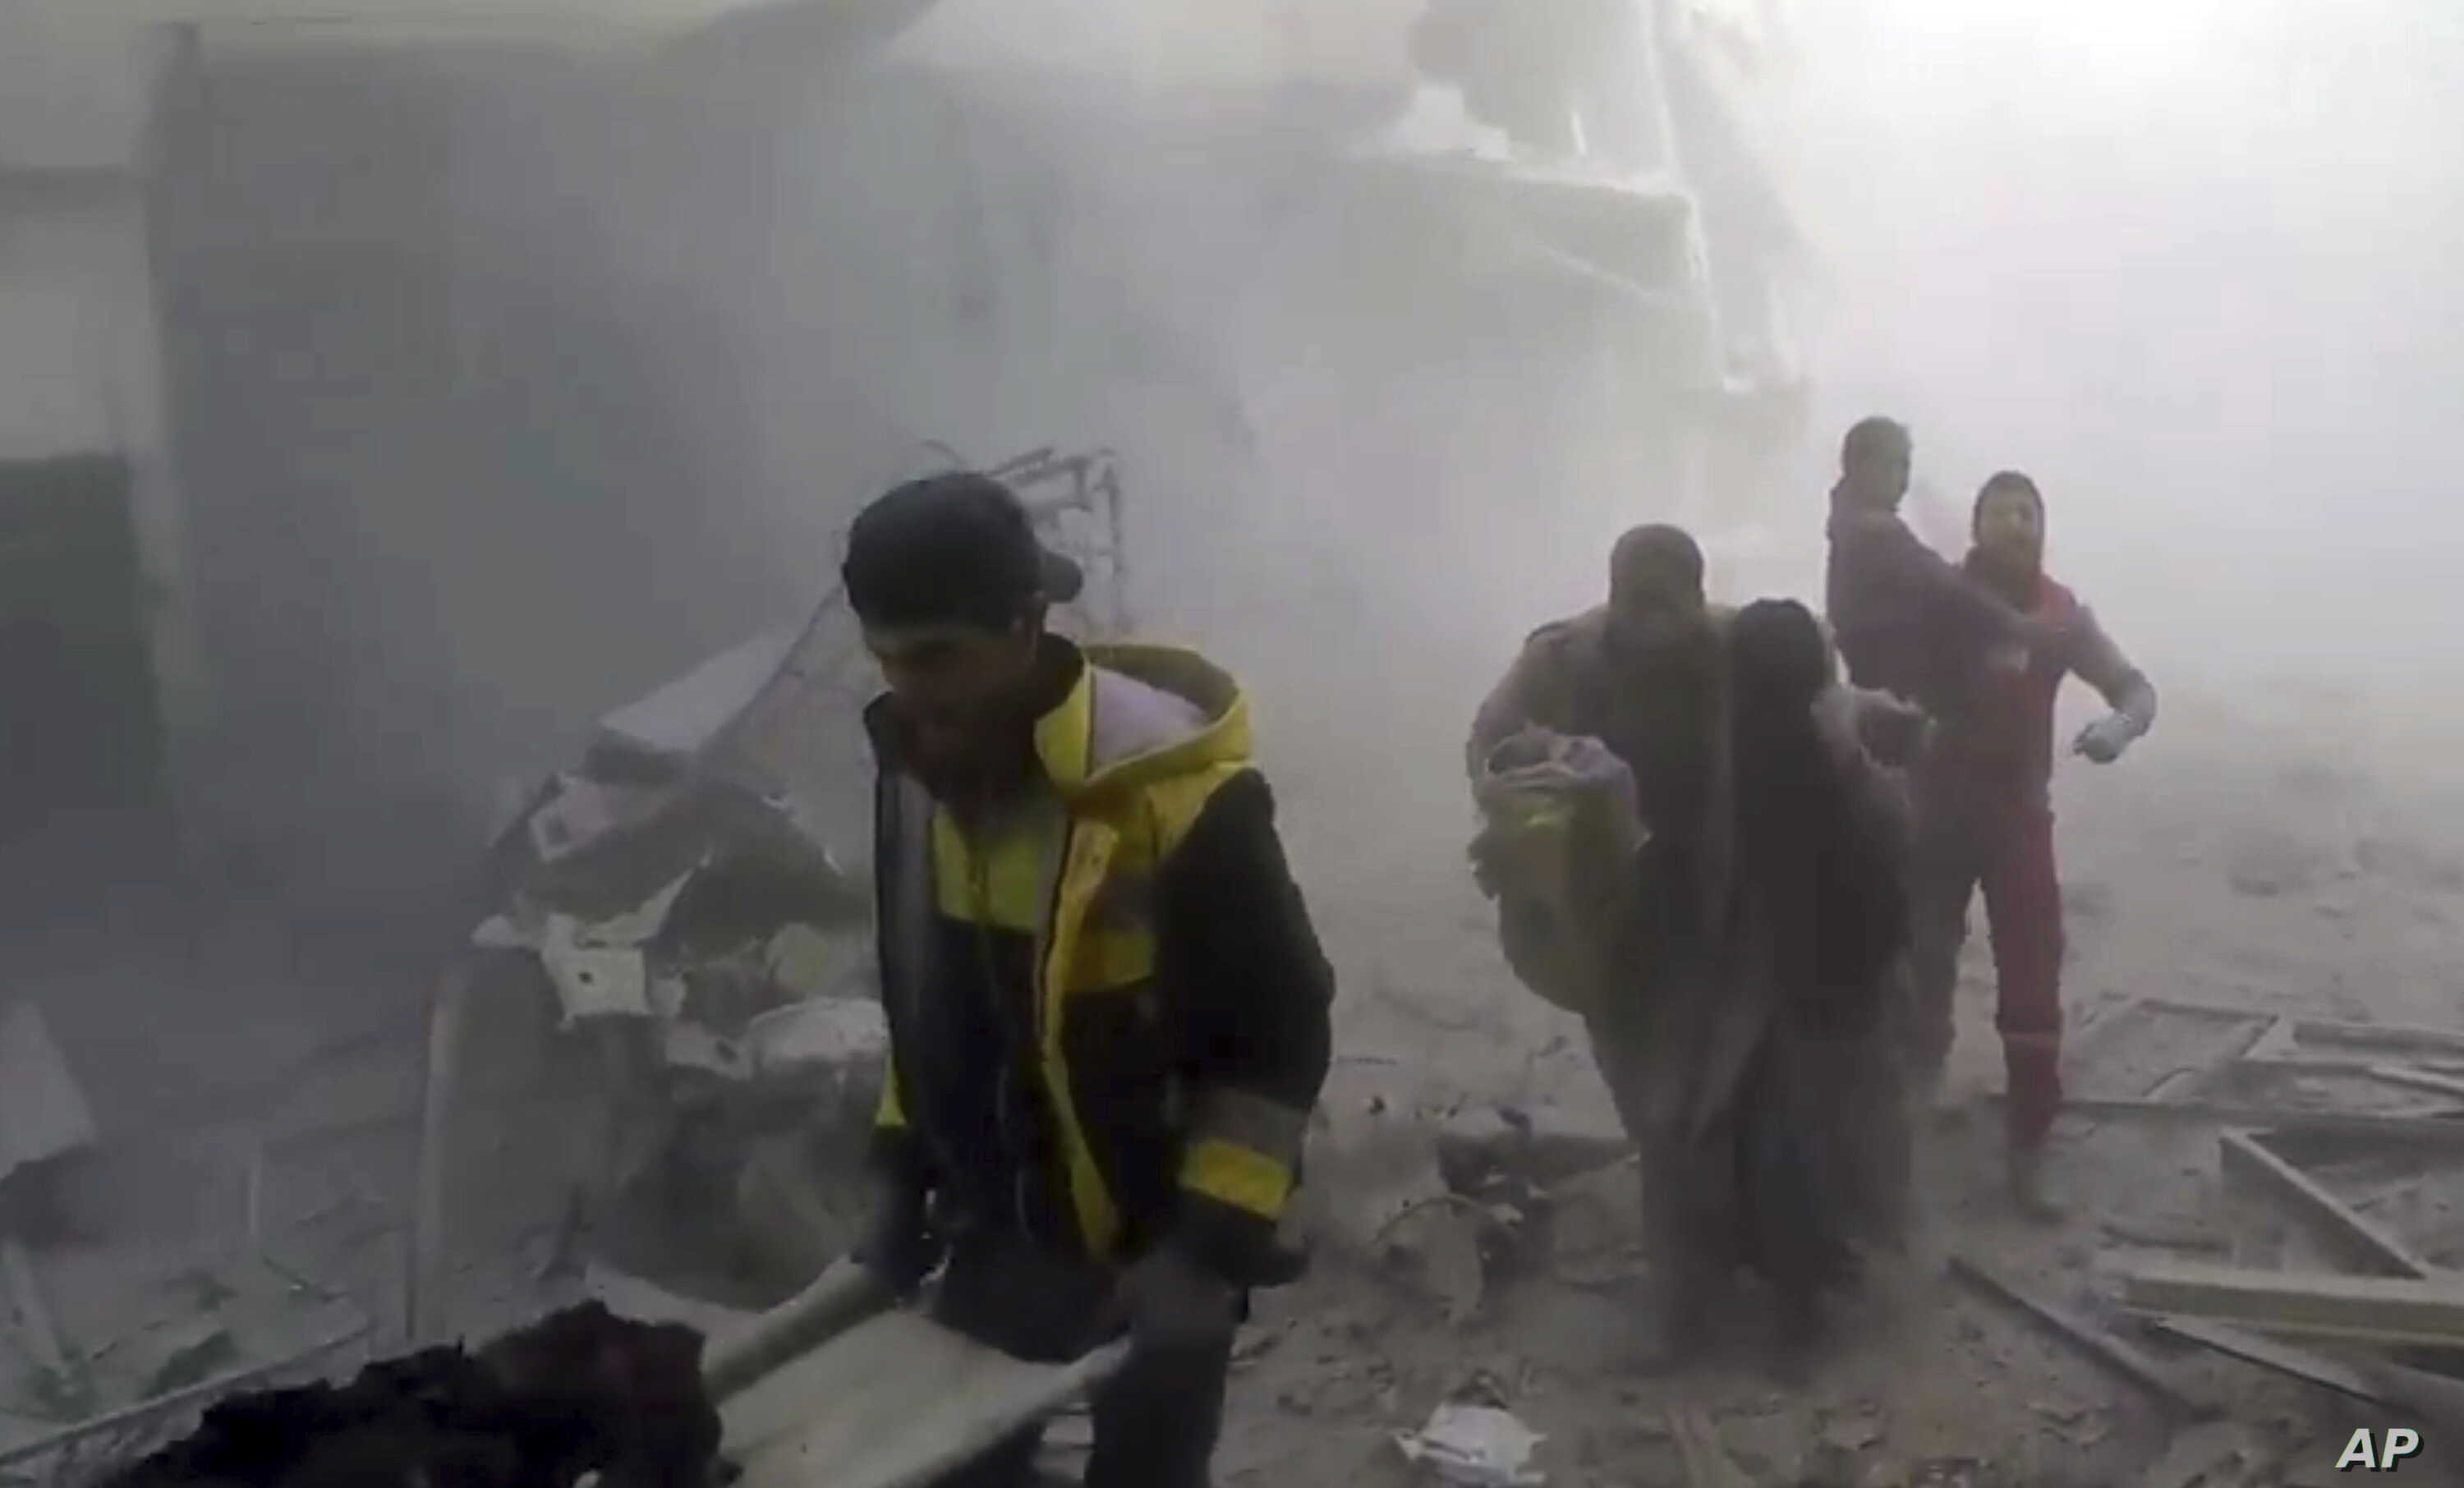 This frame grab from video released Feb 24, 2018, by the Syrian civil defense group known as the White Helmets shows members of the group helping residents during airstrikes and shelling by Syrian government forces, in Ghouta, a suburb of Damascus, S...